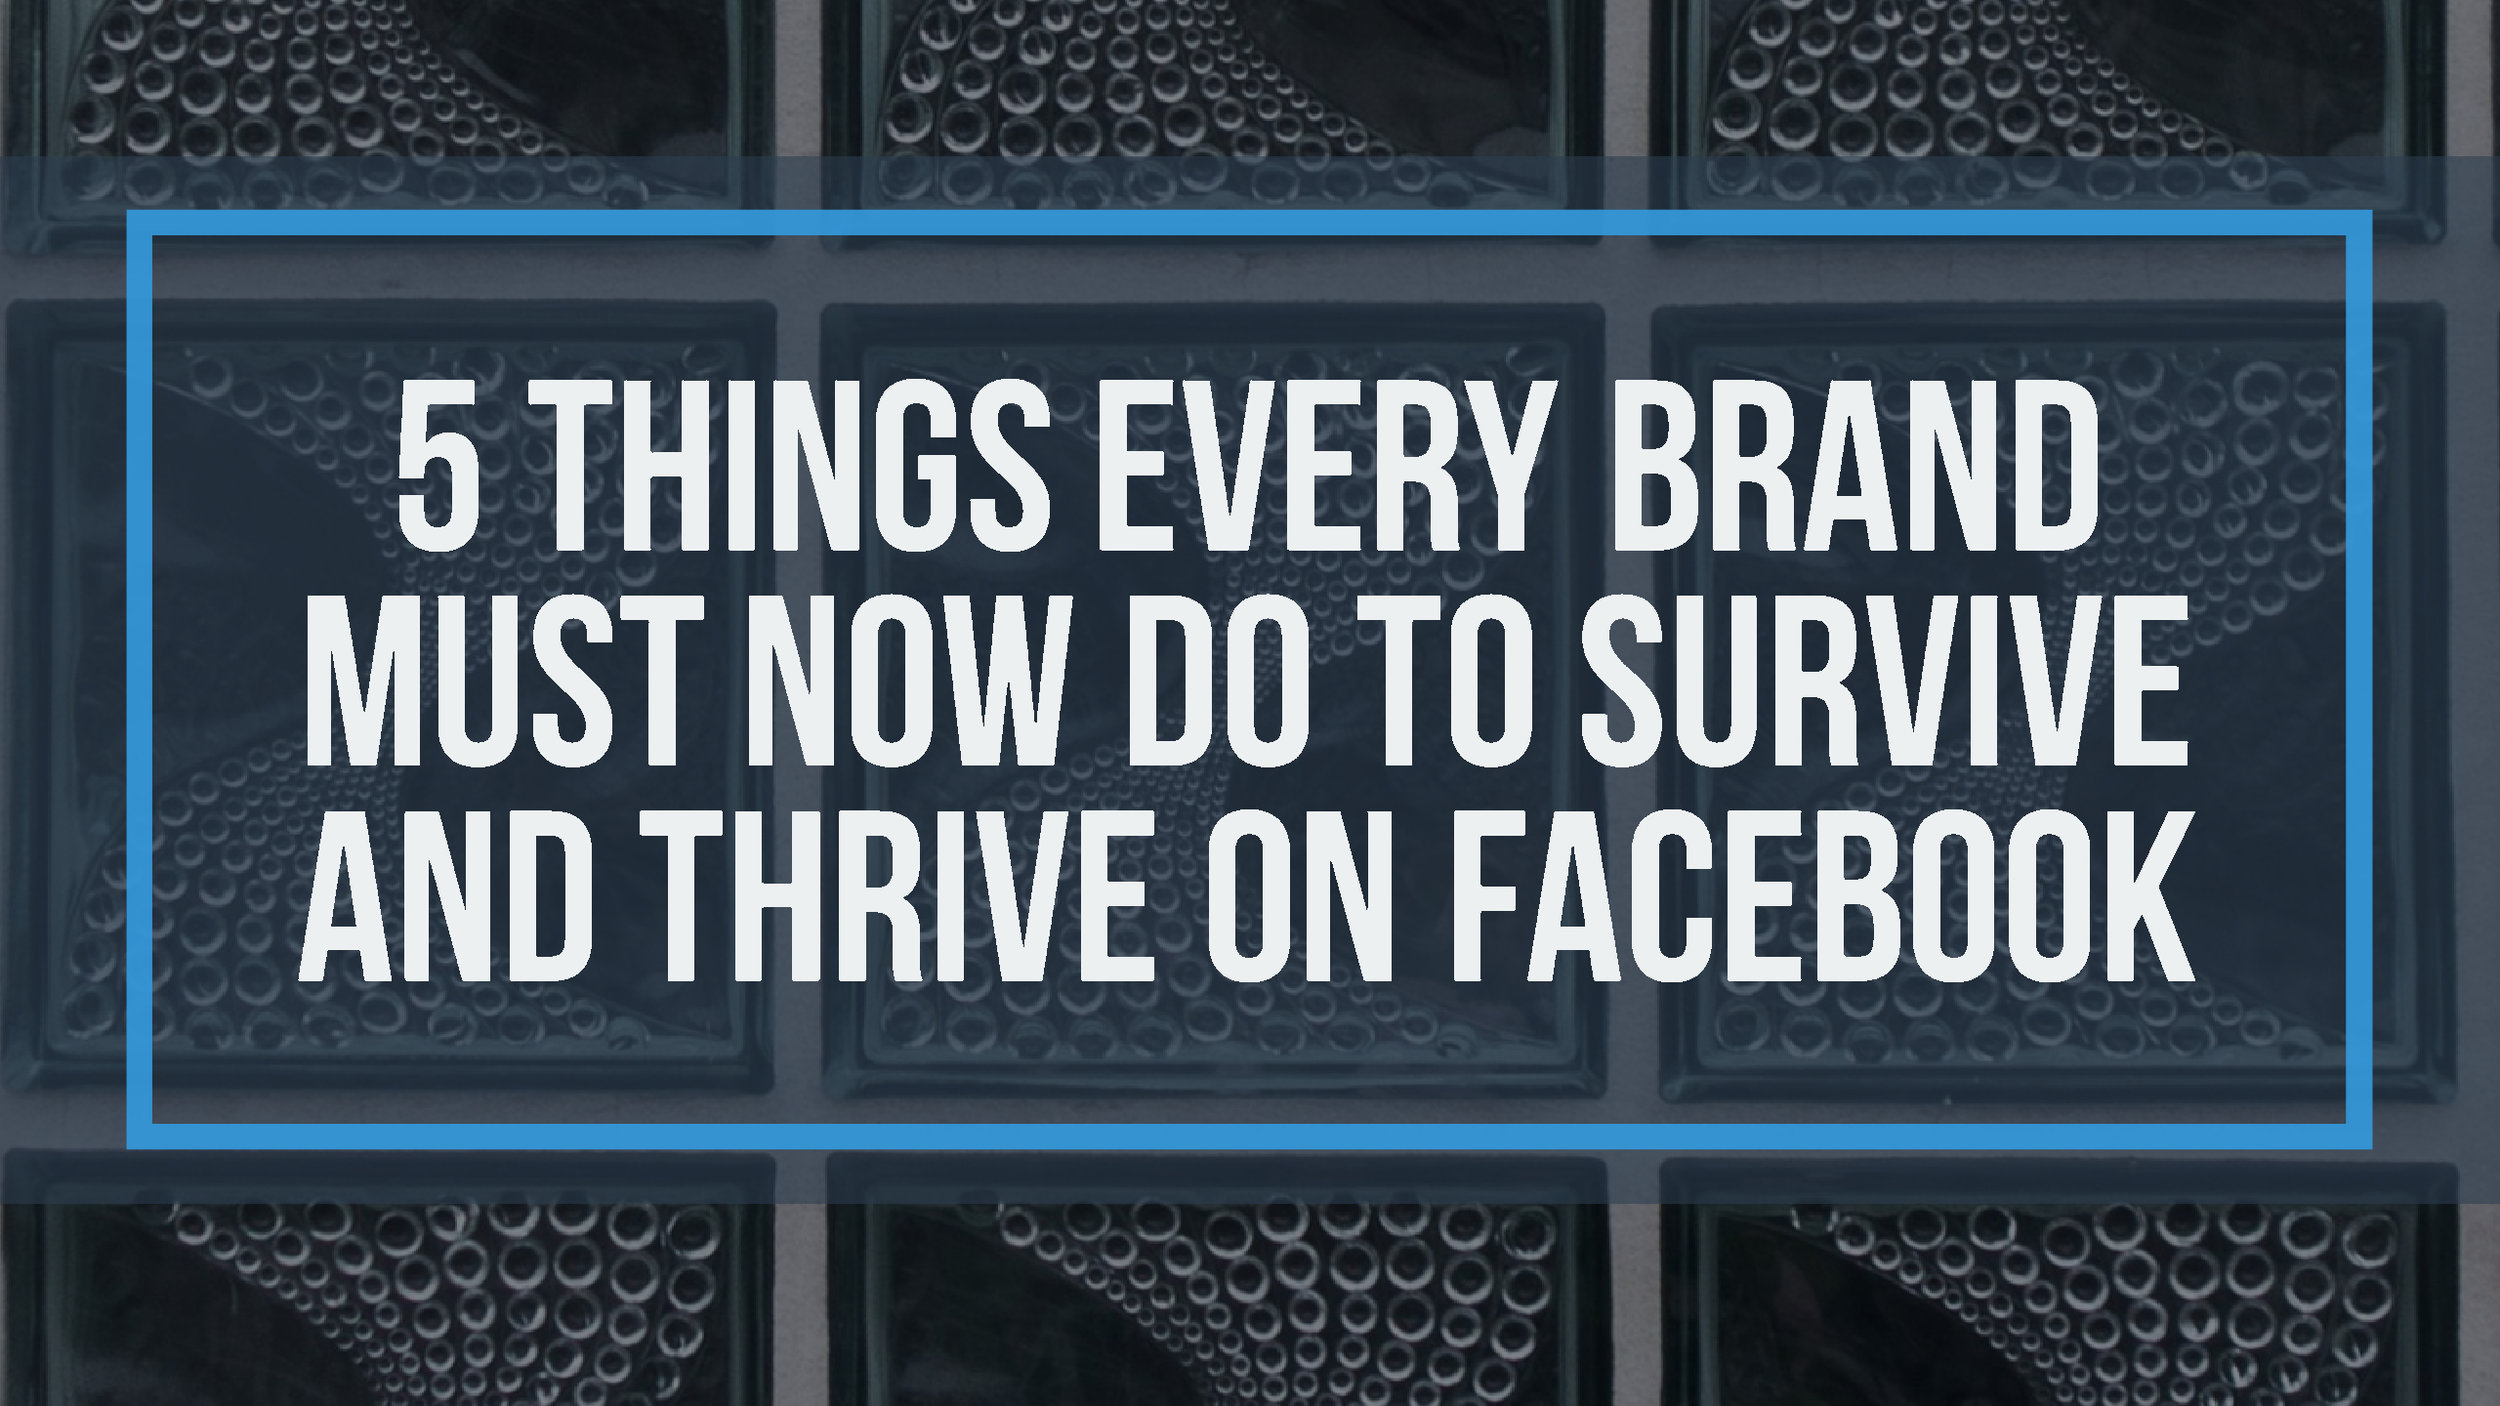 5 Things Every Brand Must Now Do To Survive and Thrive on Facebook in 2018